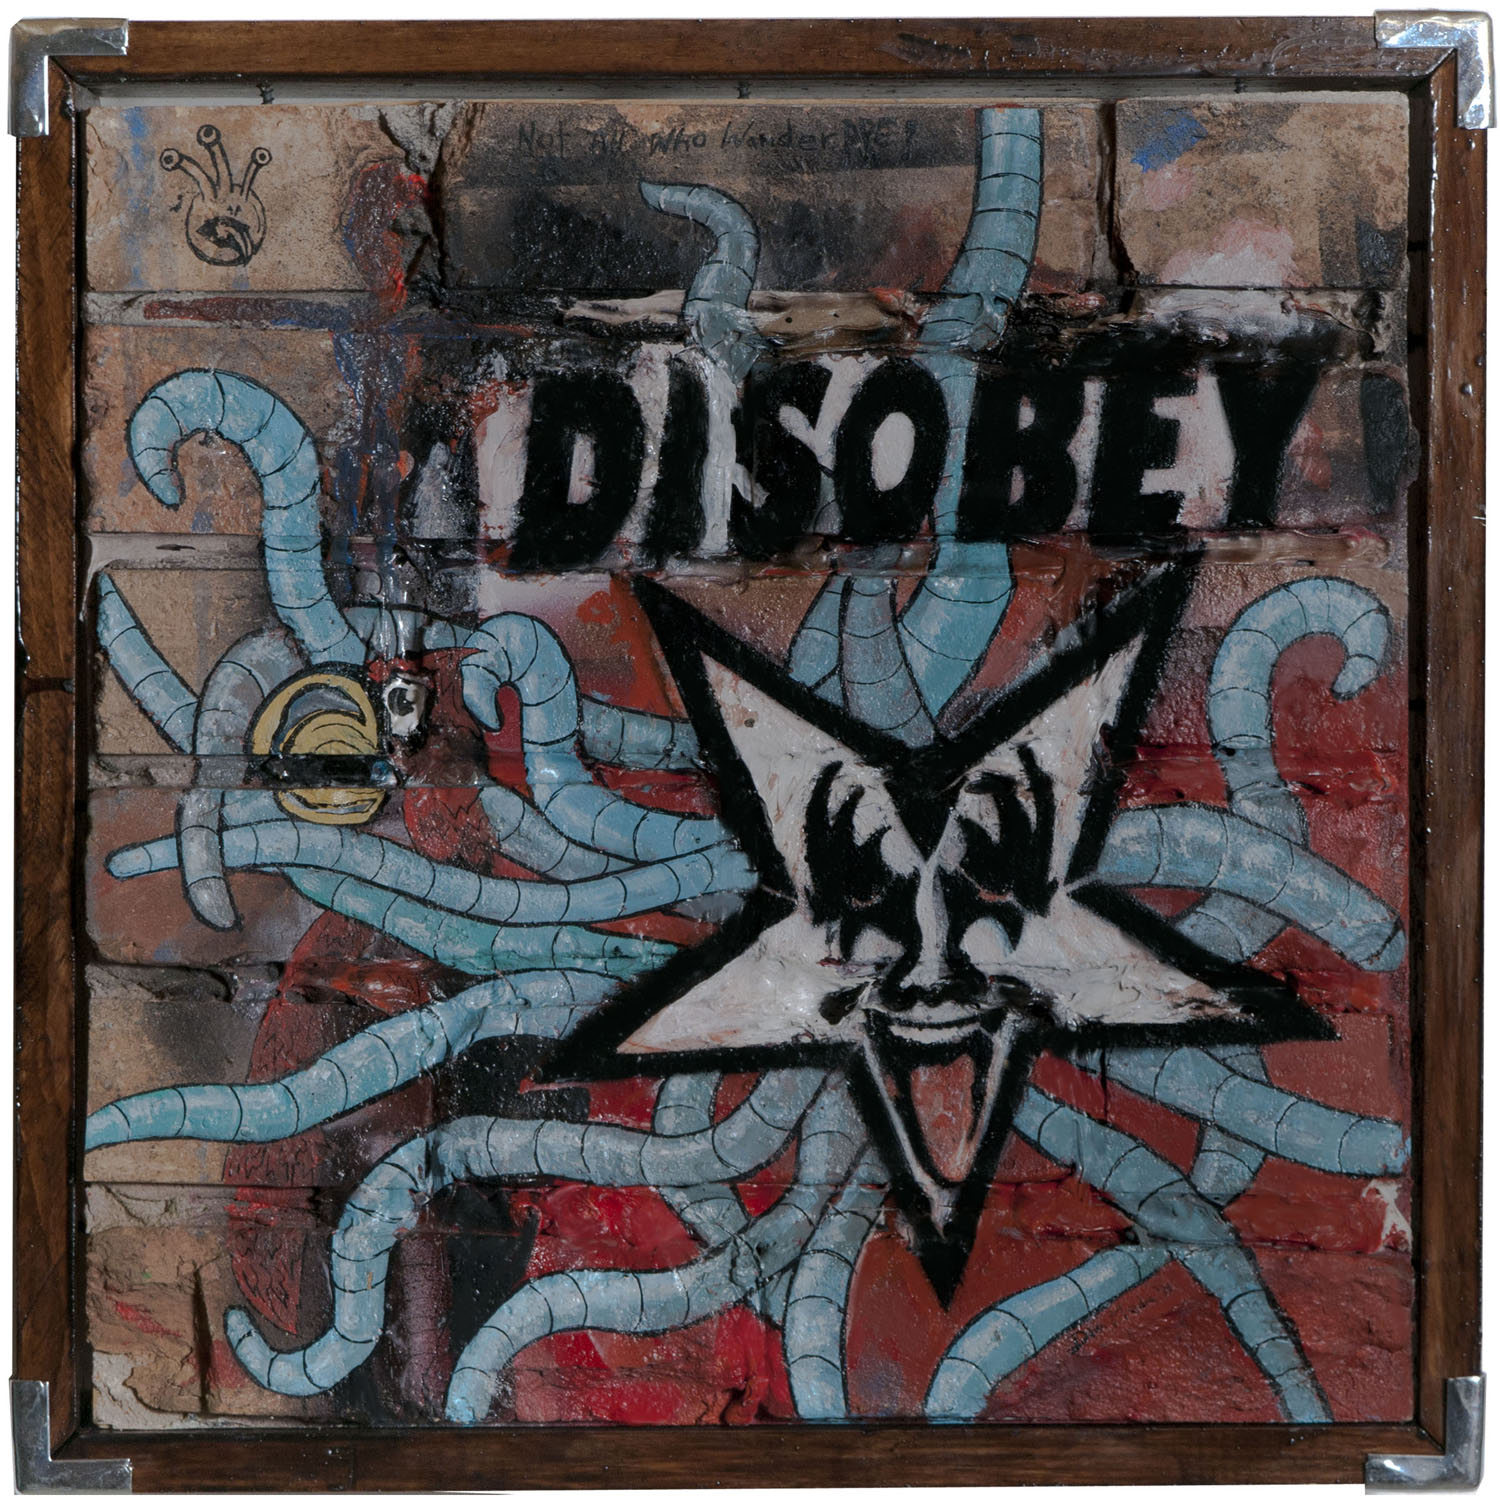 Disobey by Dim Media